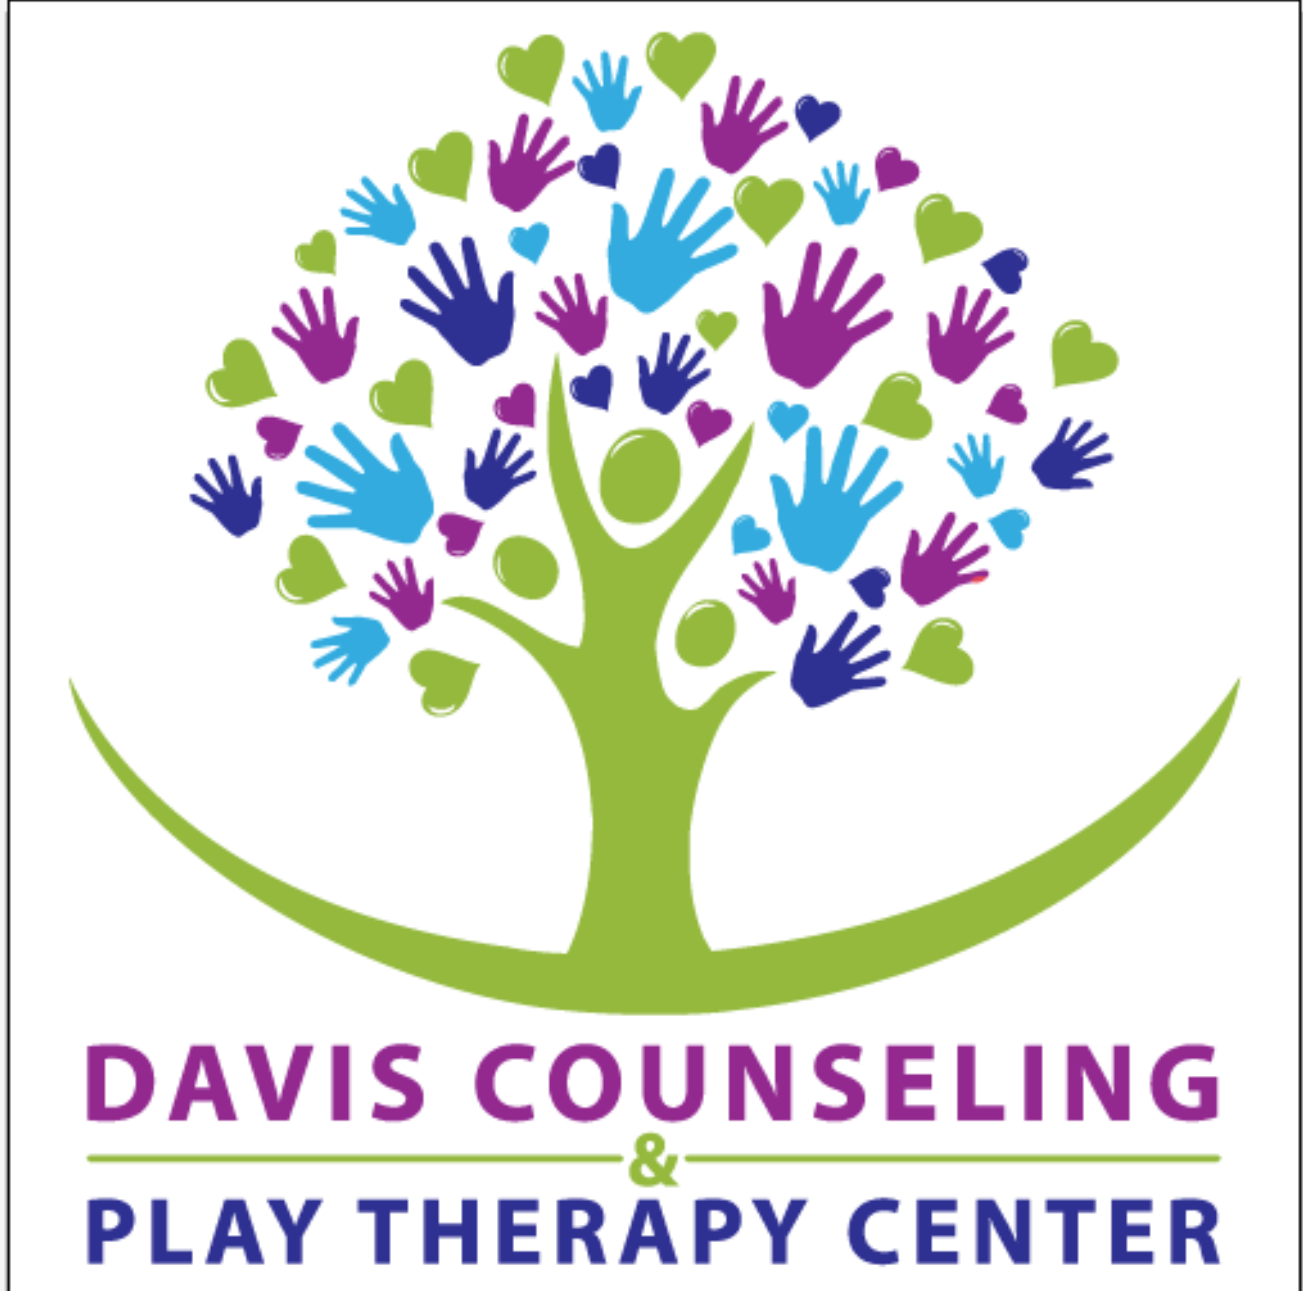 Davis Counseling & Play Therapy Center PLLC